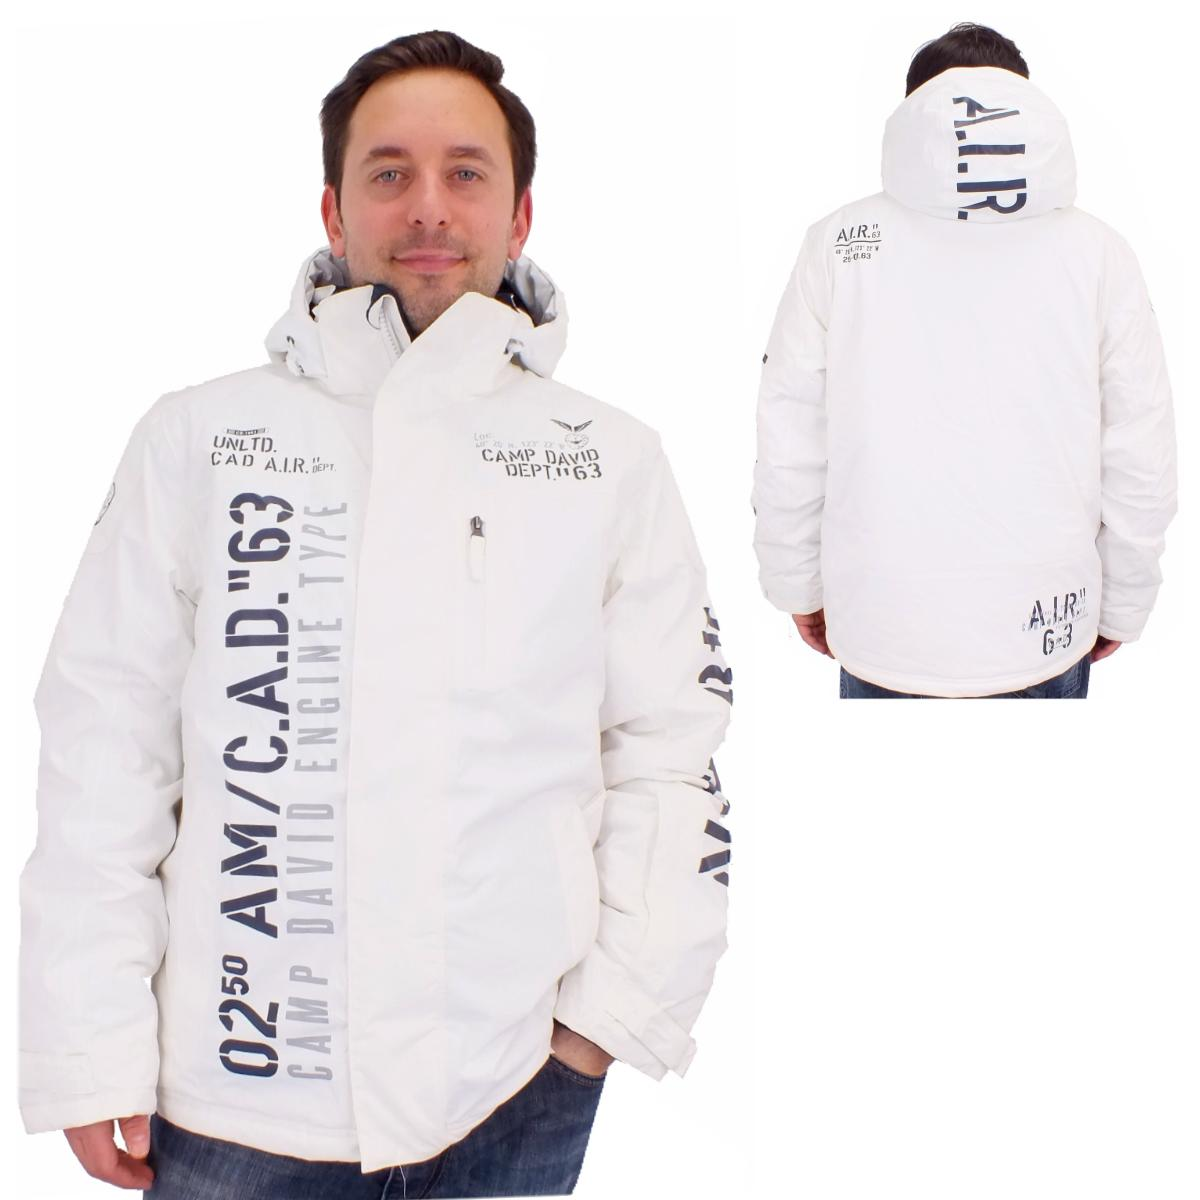 camp david british columbia flights ii jacket herren jacke winterjacke wei ebay. Black Bedroom Furniture Sets. Home Design Ideas